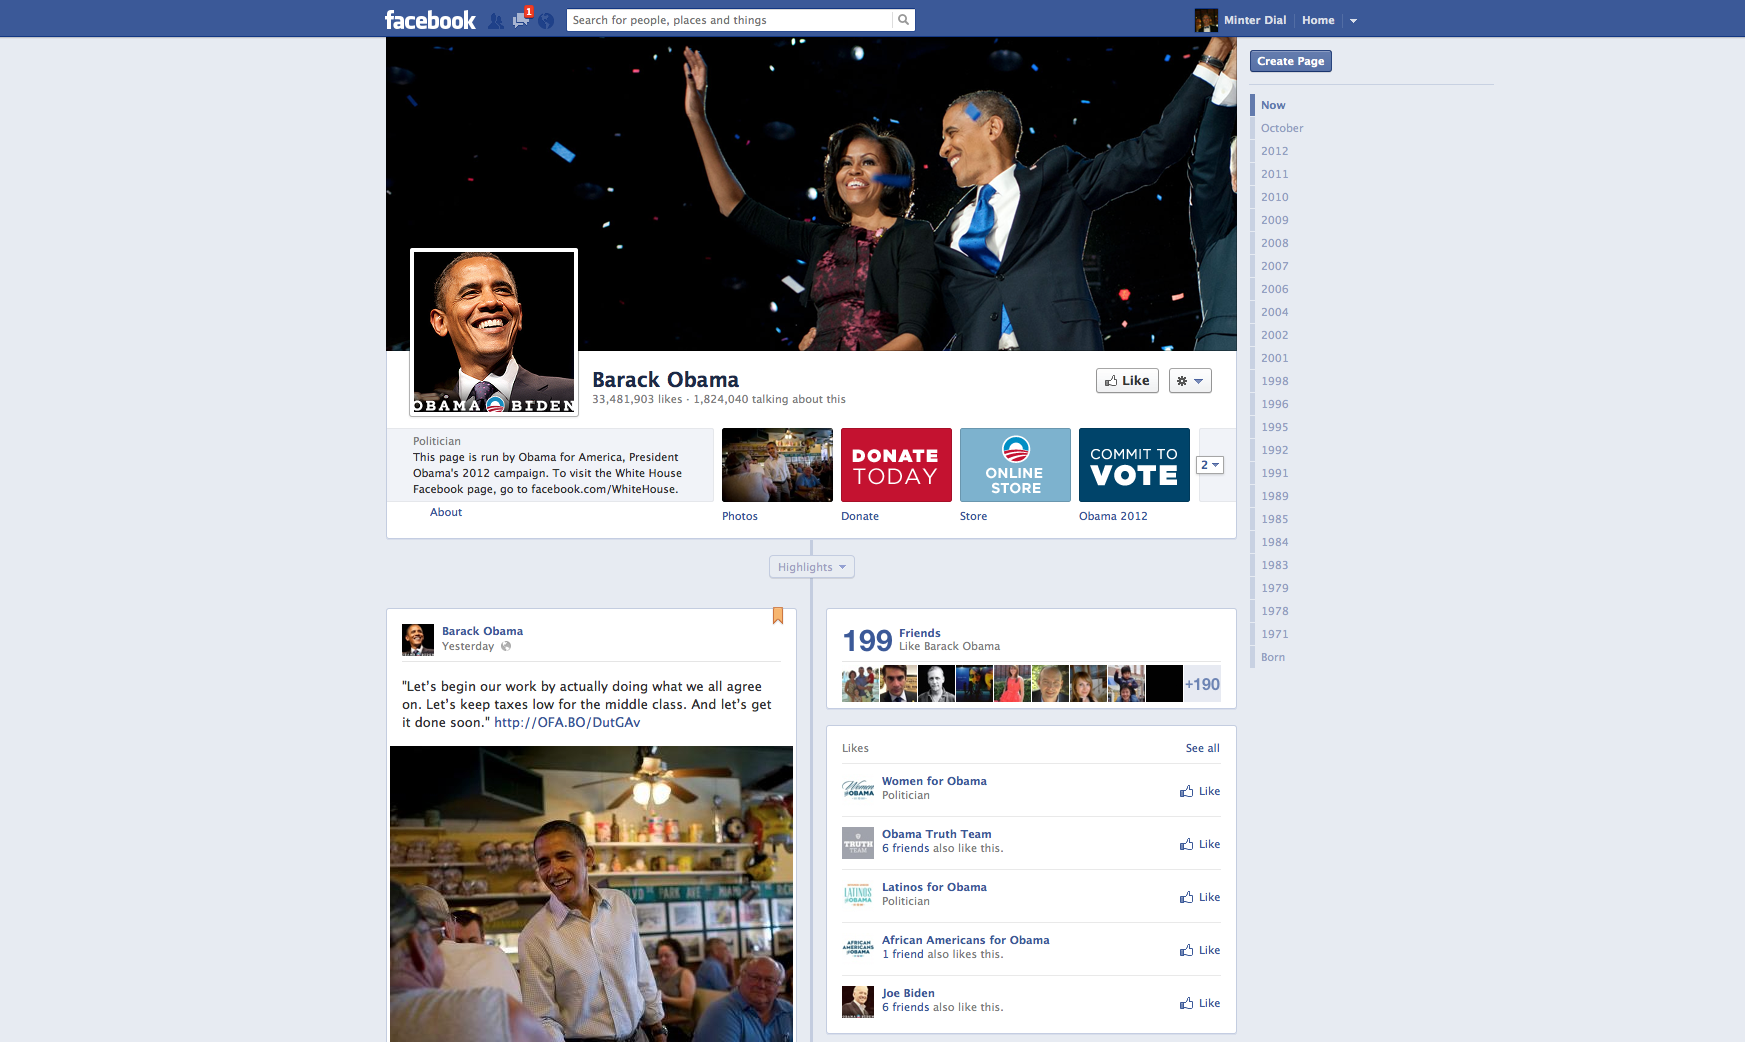 Obama Facebook page, The Myndset Digital marketing and brand strategy